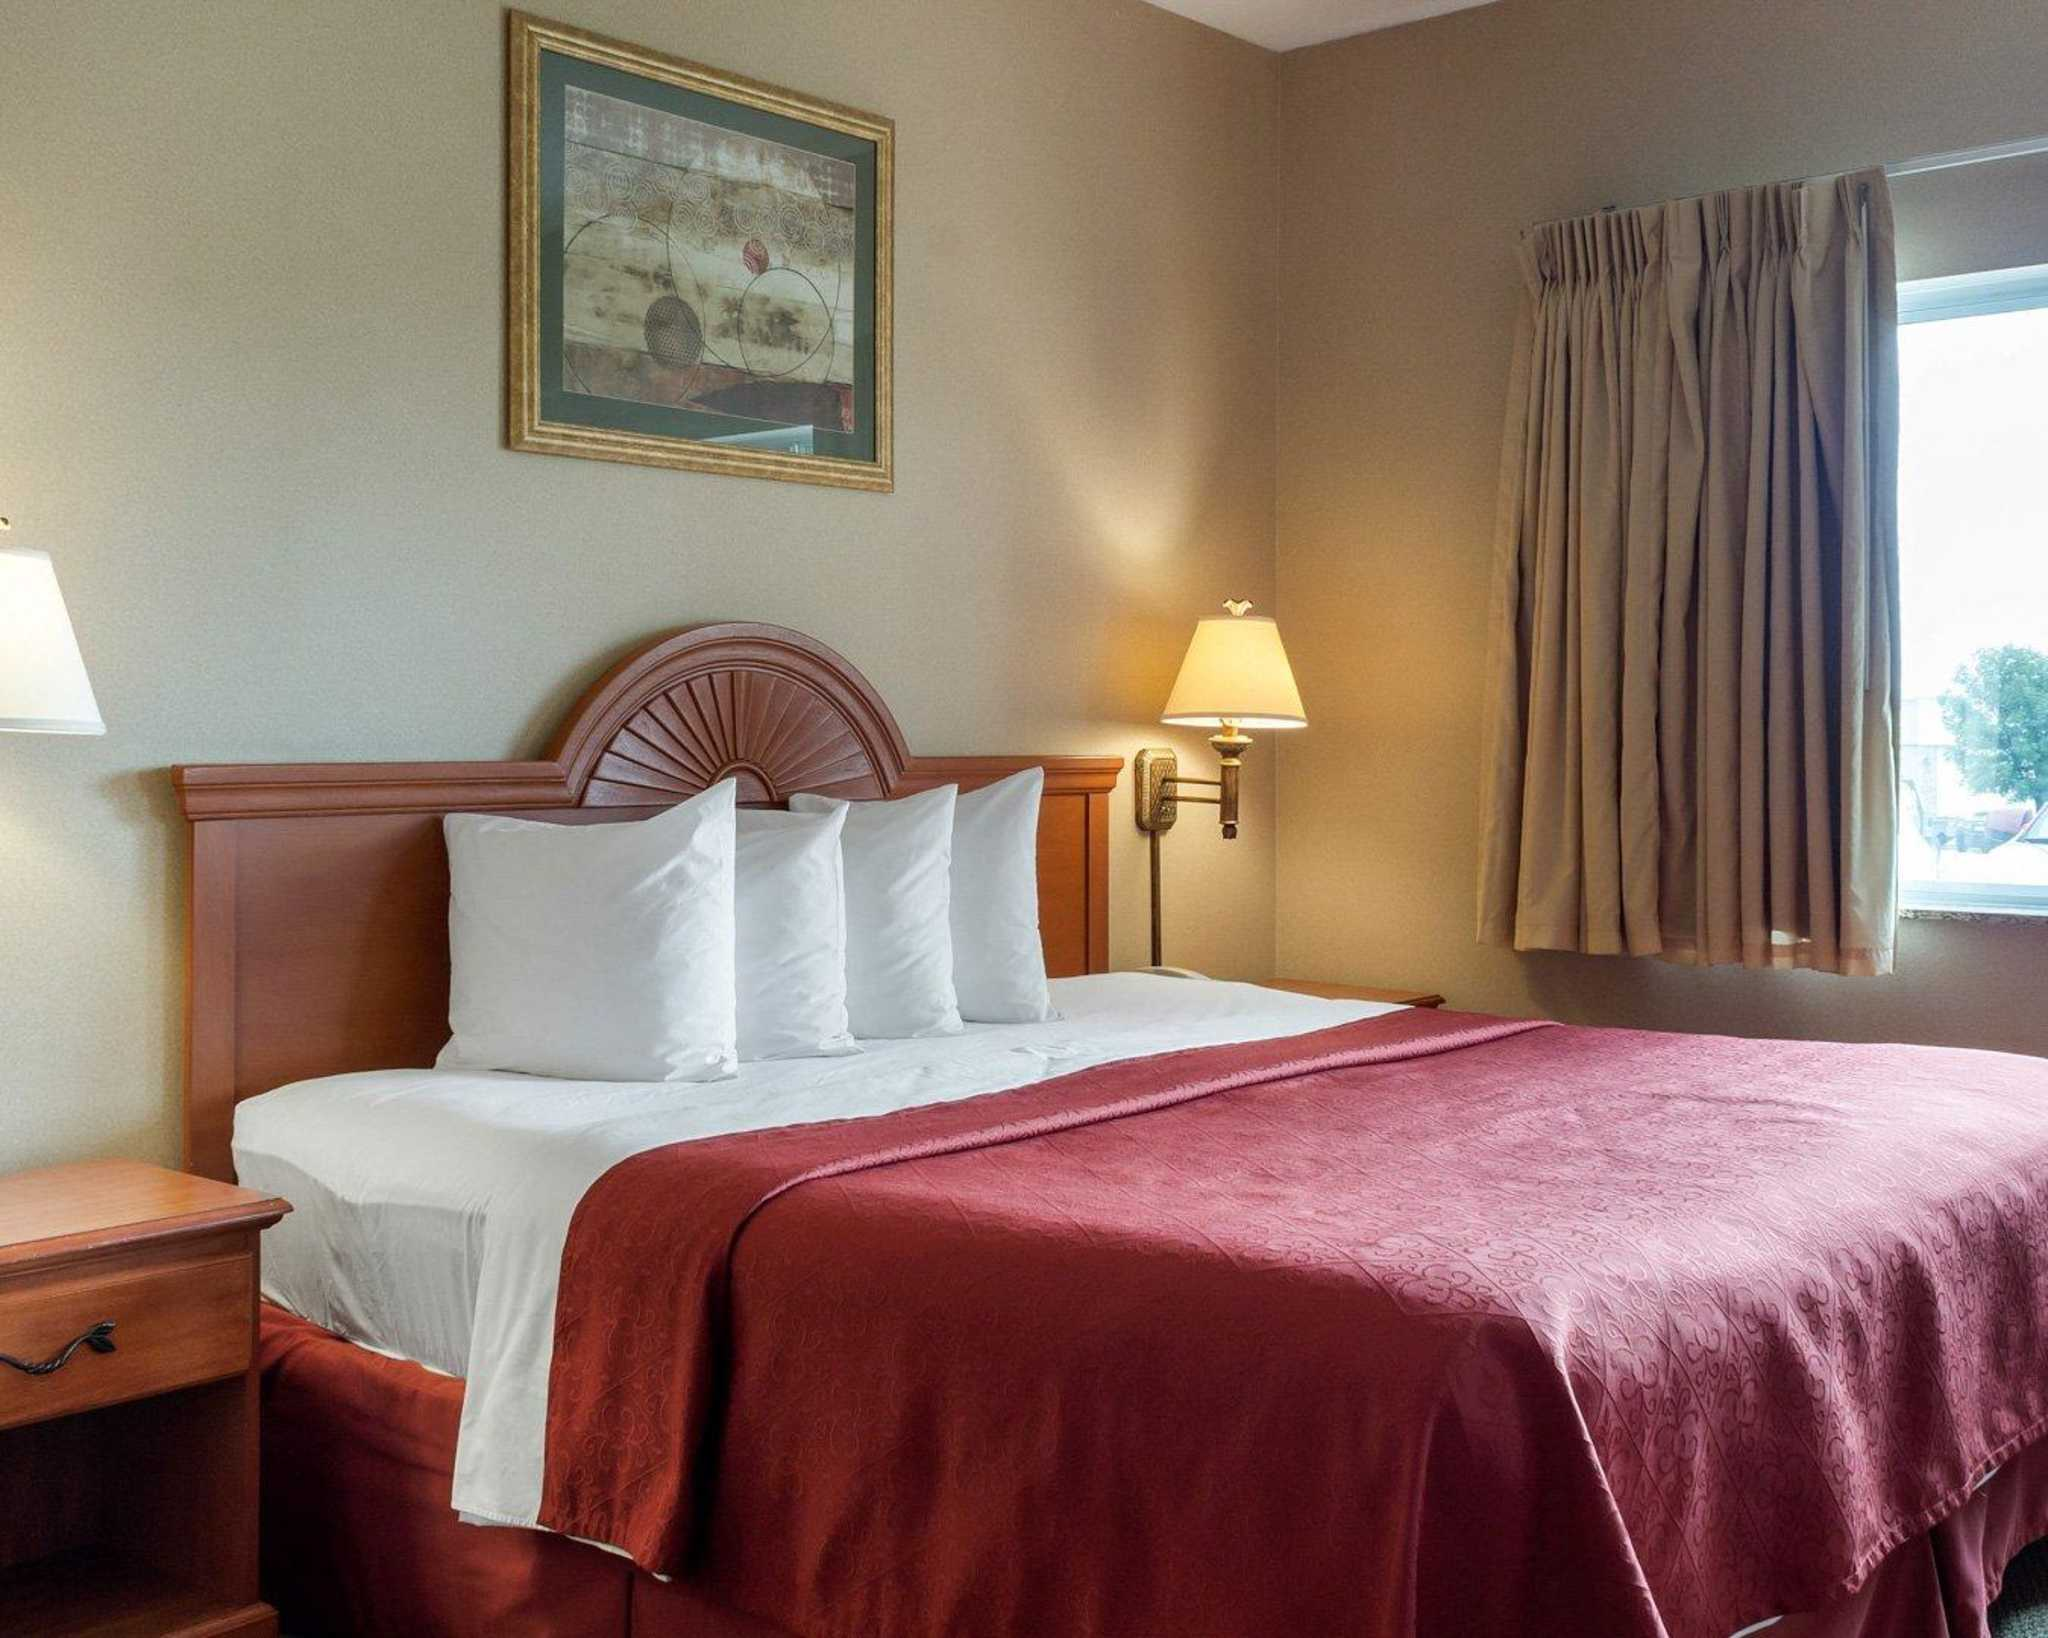 Quality Inn - Brookings, SD 57006 - (605)692-9566 | ShowMeLocal.com